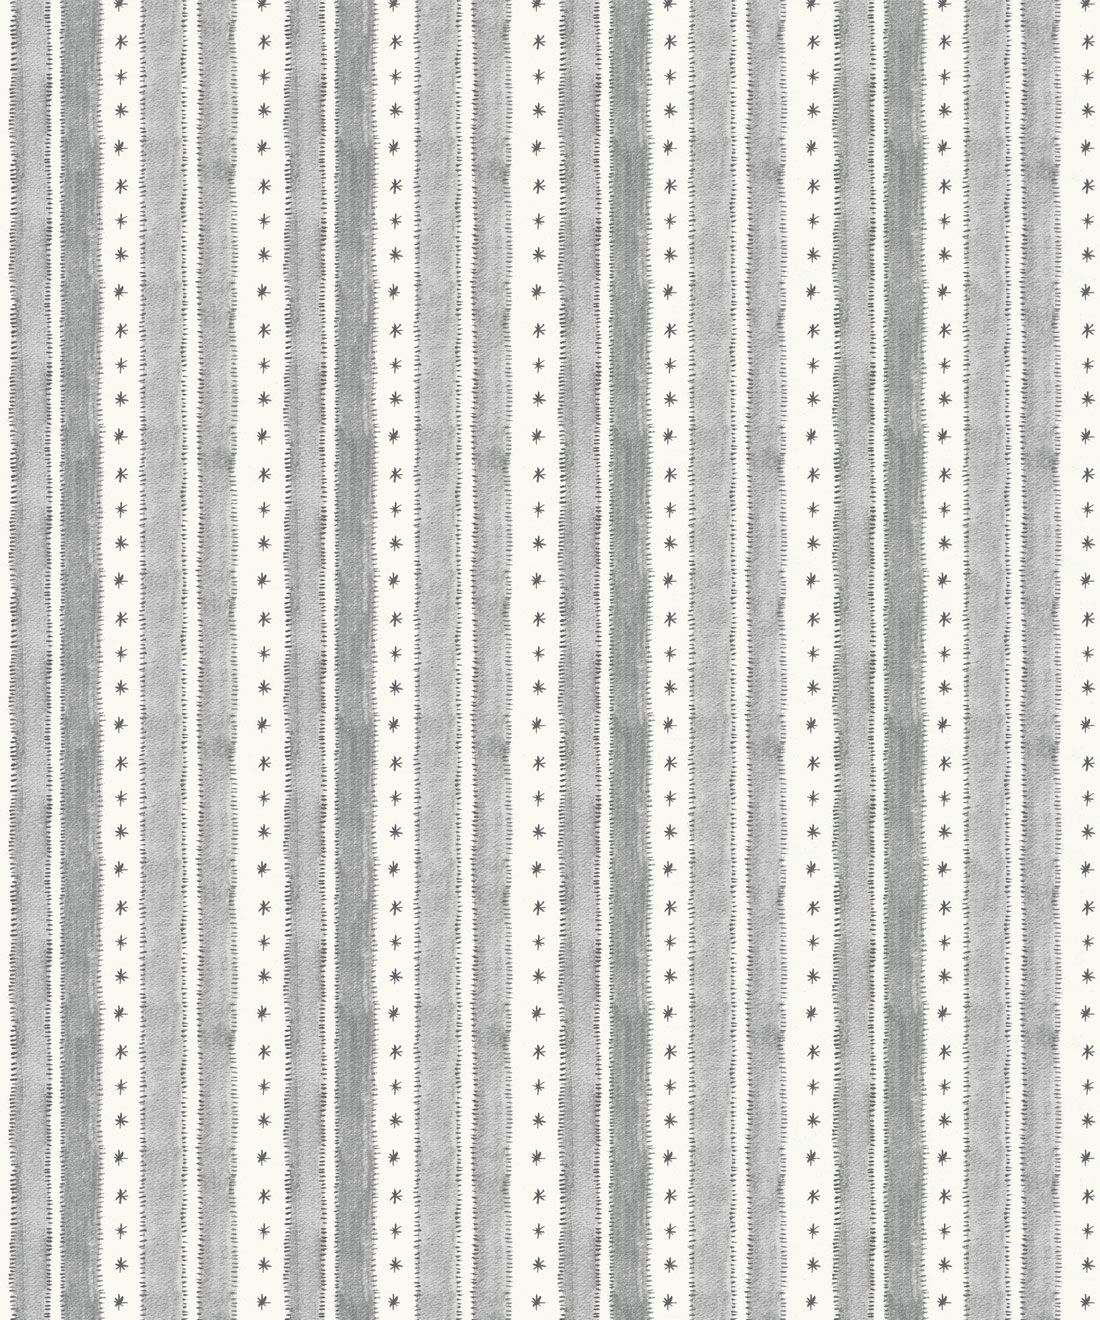 Star Stripe Wallpaper • Charcoal • Swatch